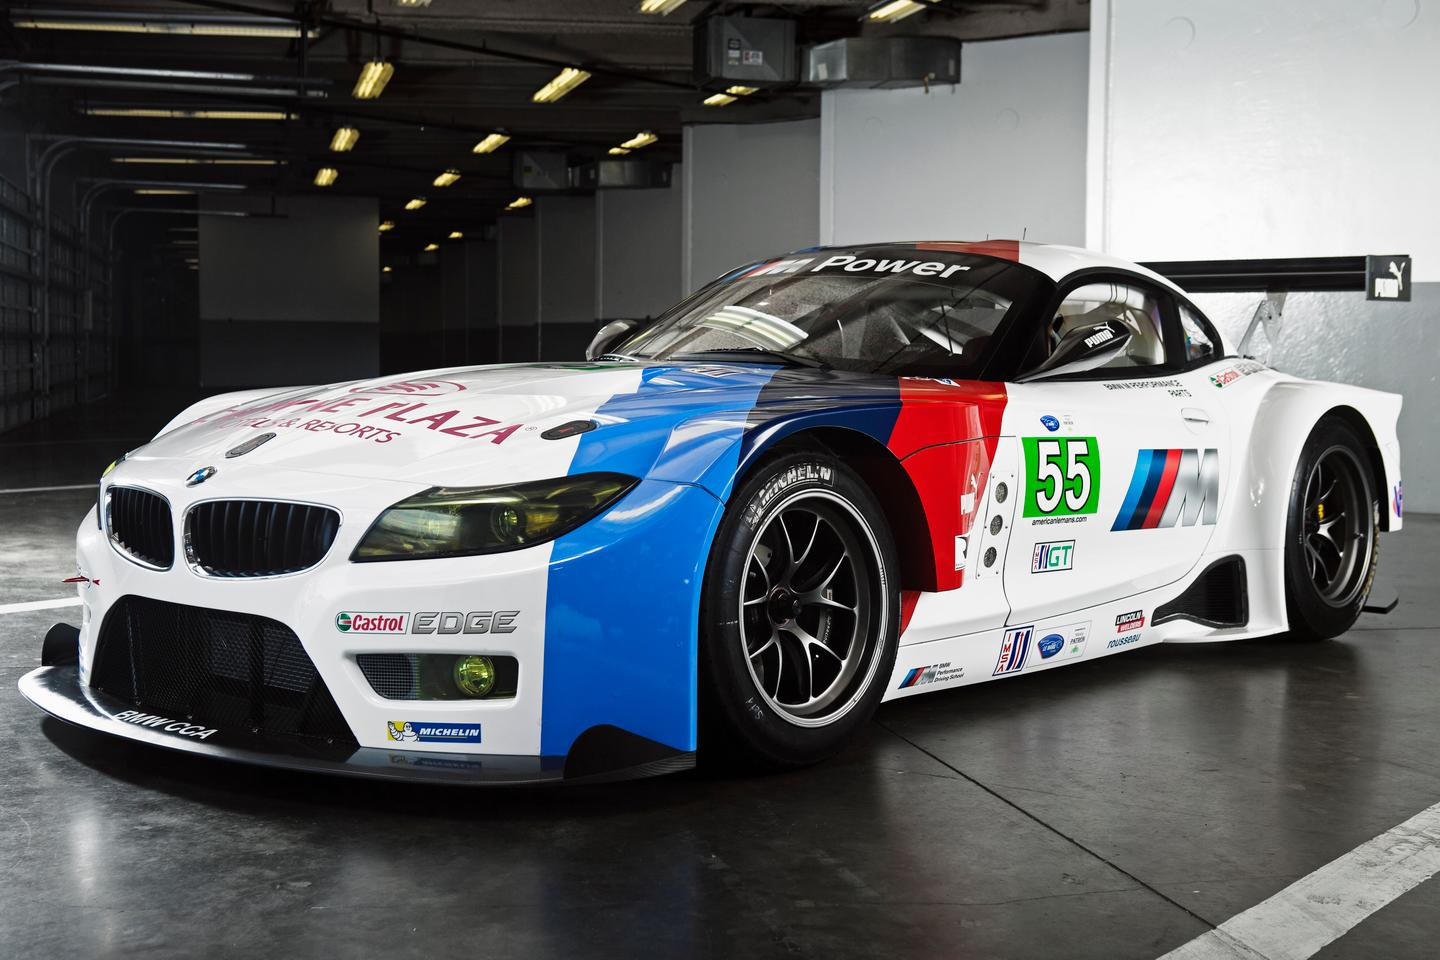 The Z4 GTE is based on the Z4 GT3